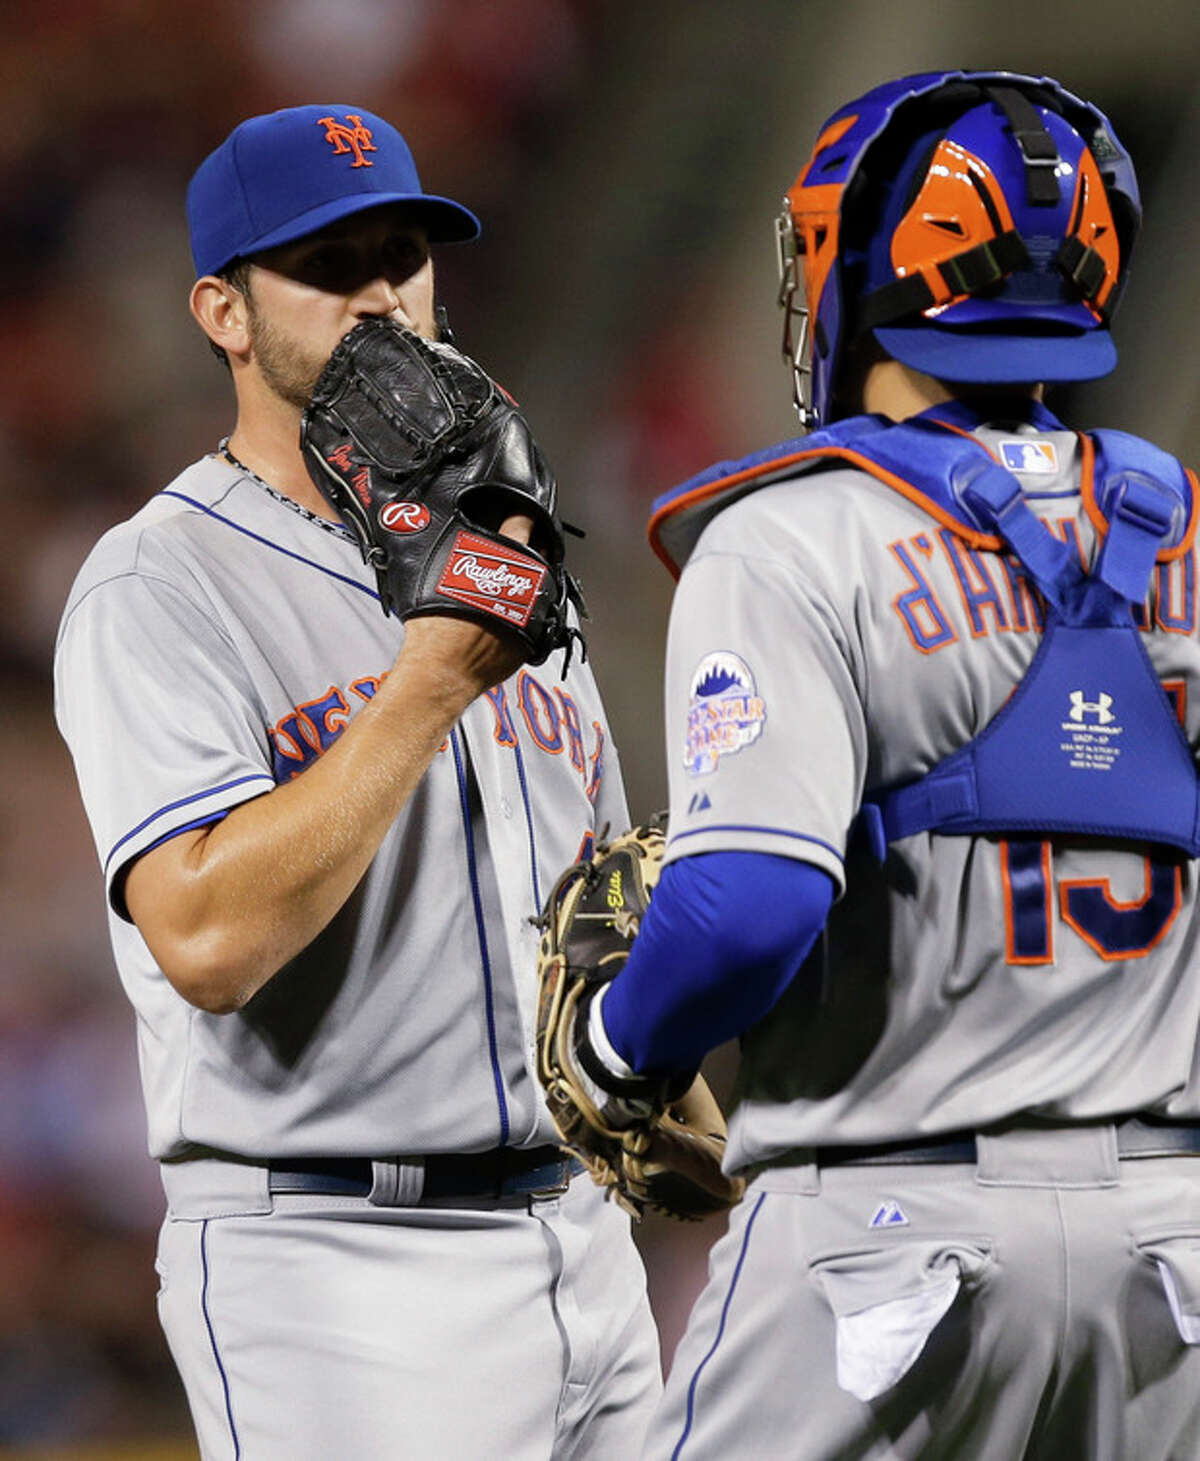 New York Mets starting pitcher Jonathon Niese talks with catcher Travis d'Arnaud in the fourth inning of a baseball game against the Cincinnati Reds, Tuesday, Sept. 24, 2013, in Cincinnati. (AP Photo/Al Behrman)